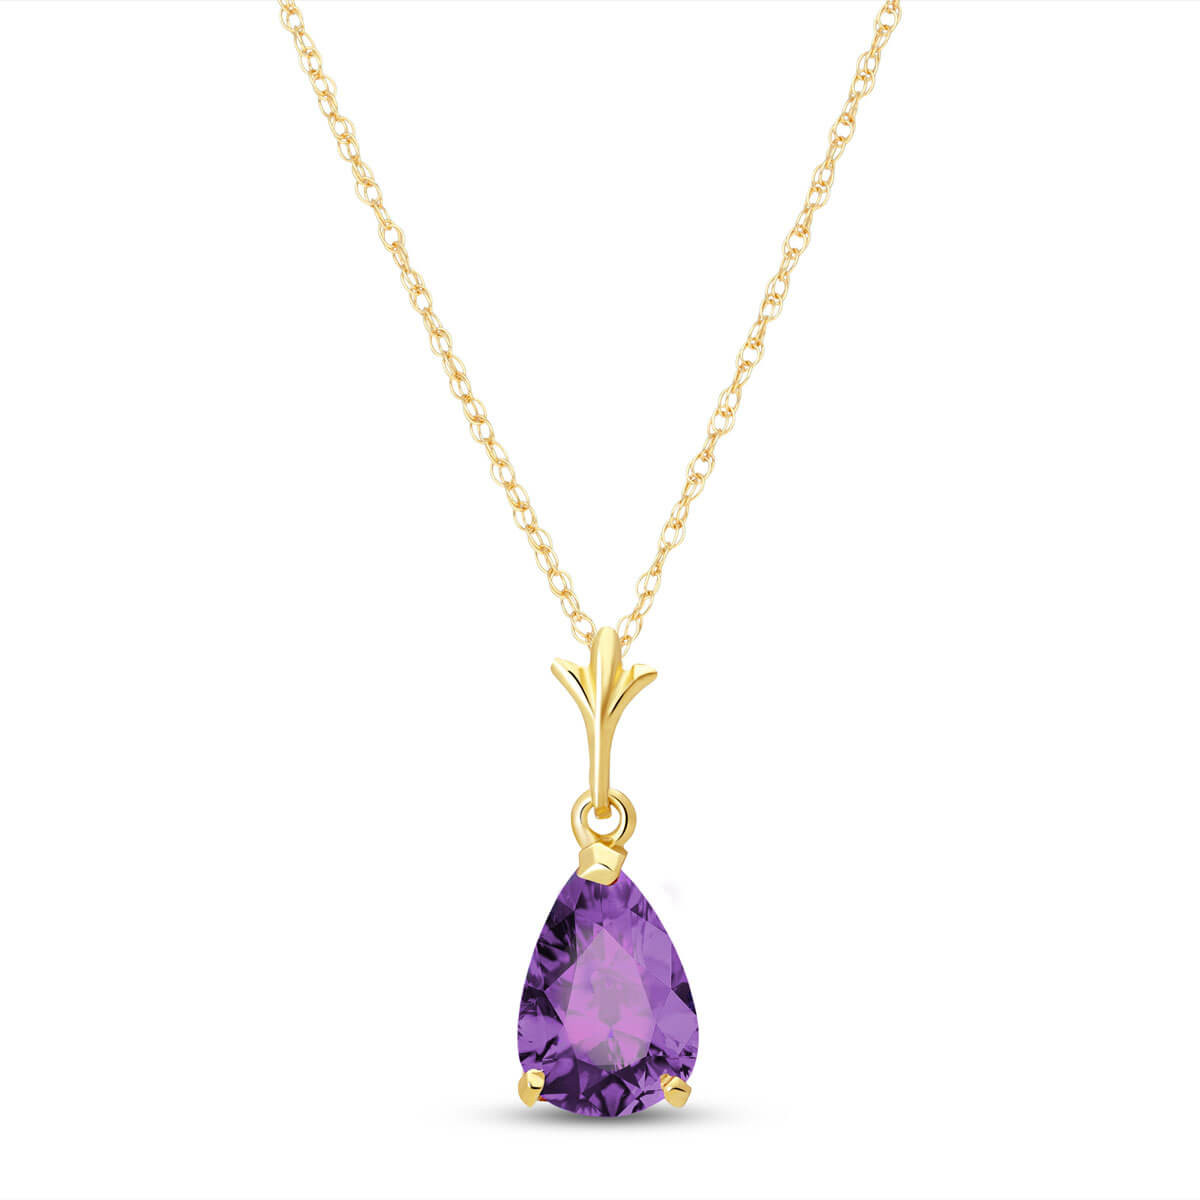 Amethyst Belle Pendant Necklace 1.5 ct in 9ct Gold